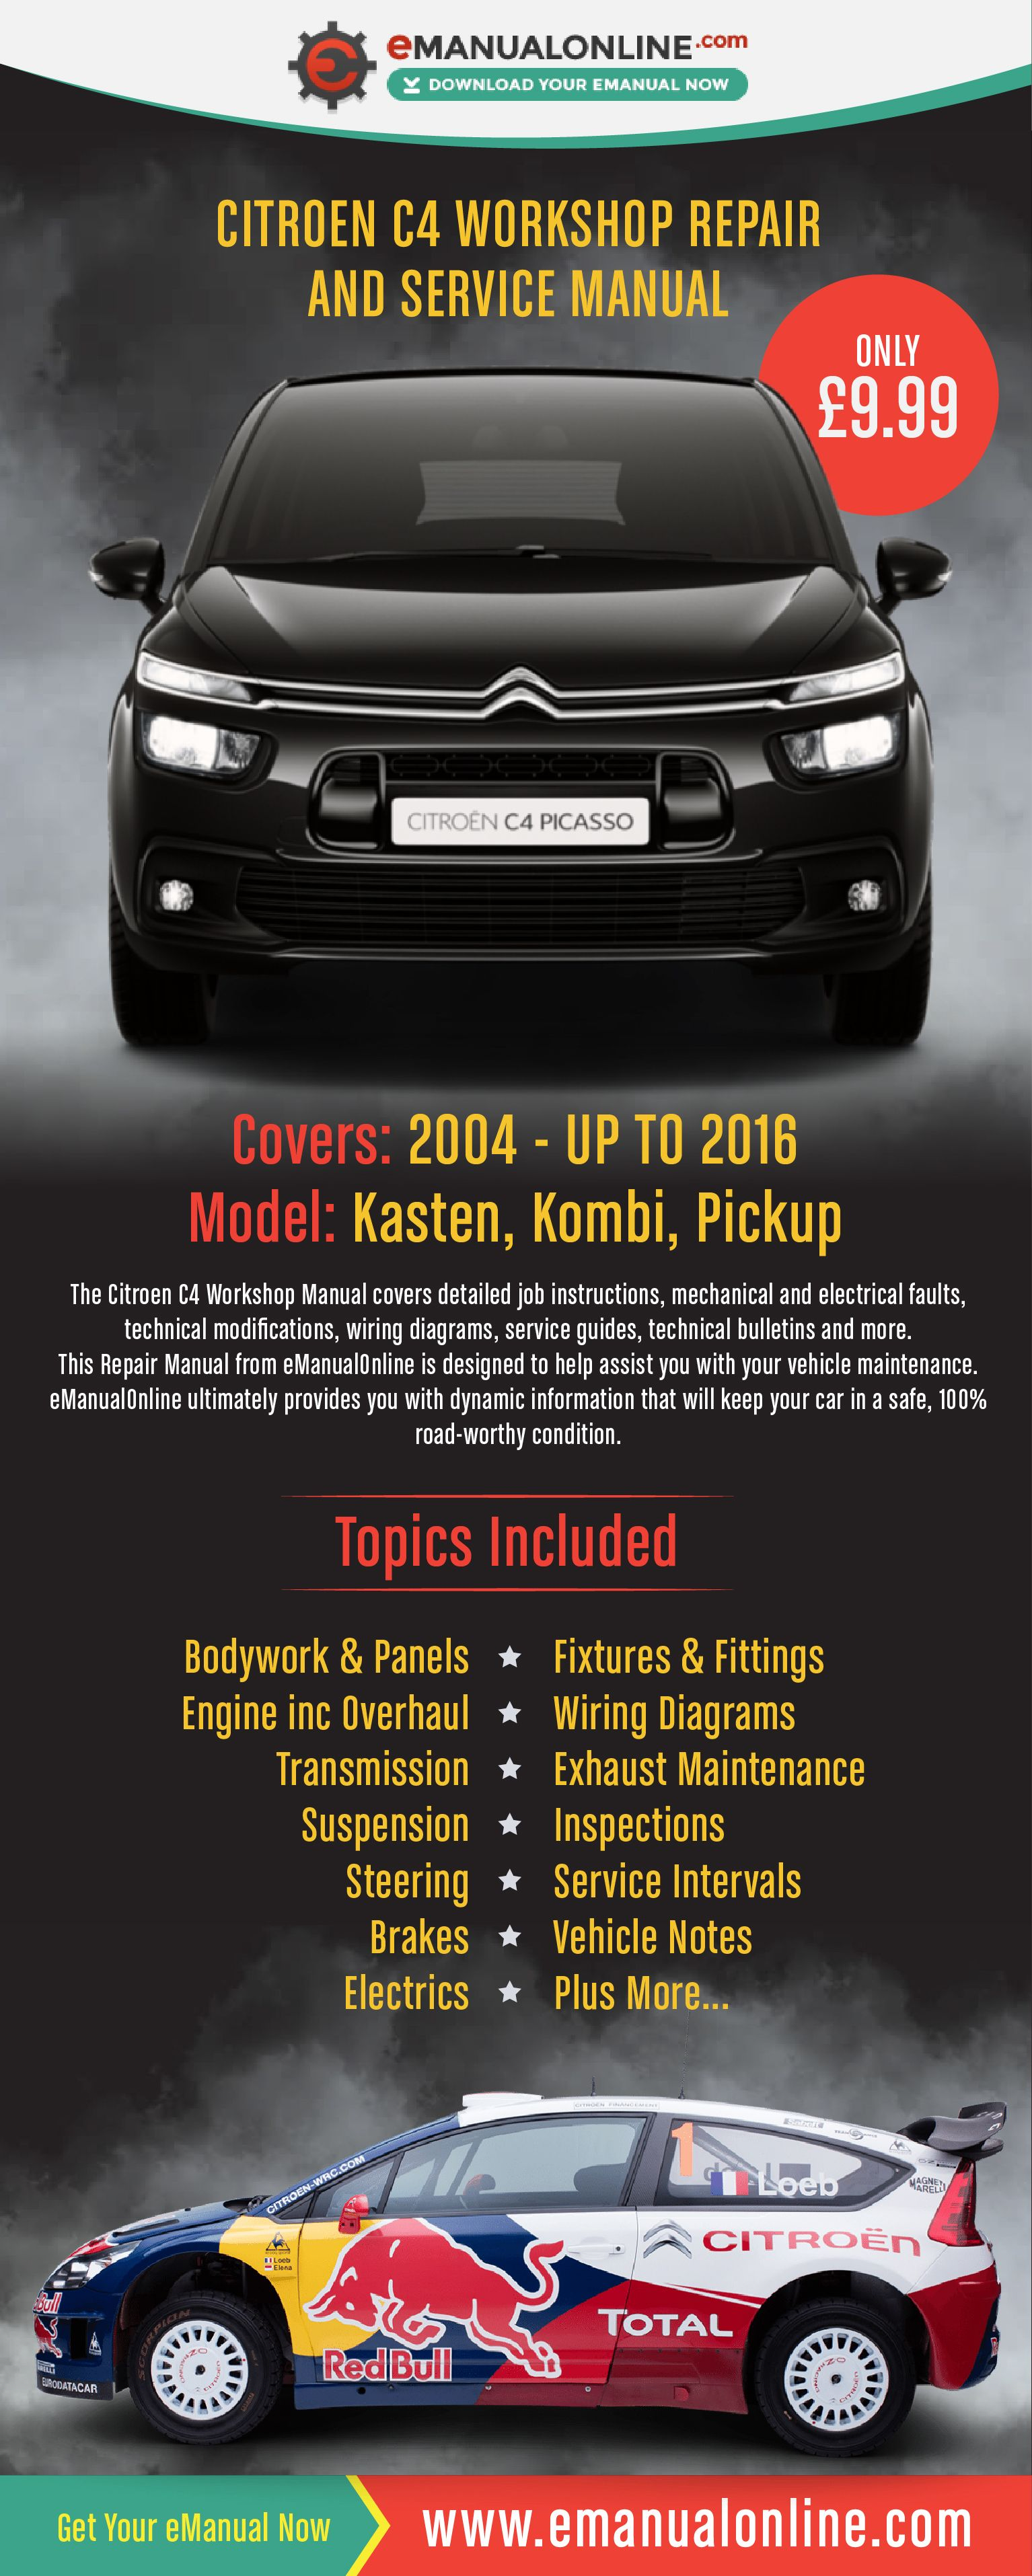 Office Equipment Citroen Workshop Service And Repair Manual All Models Download Link Only